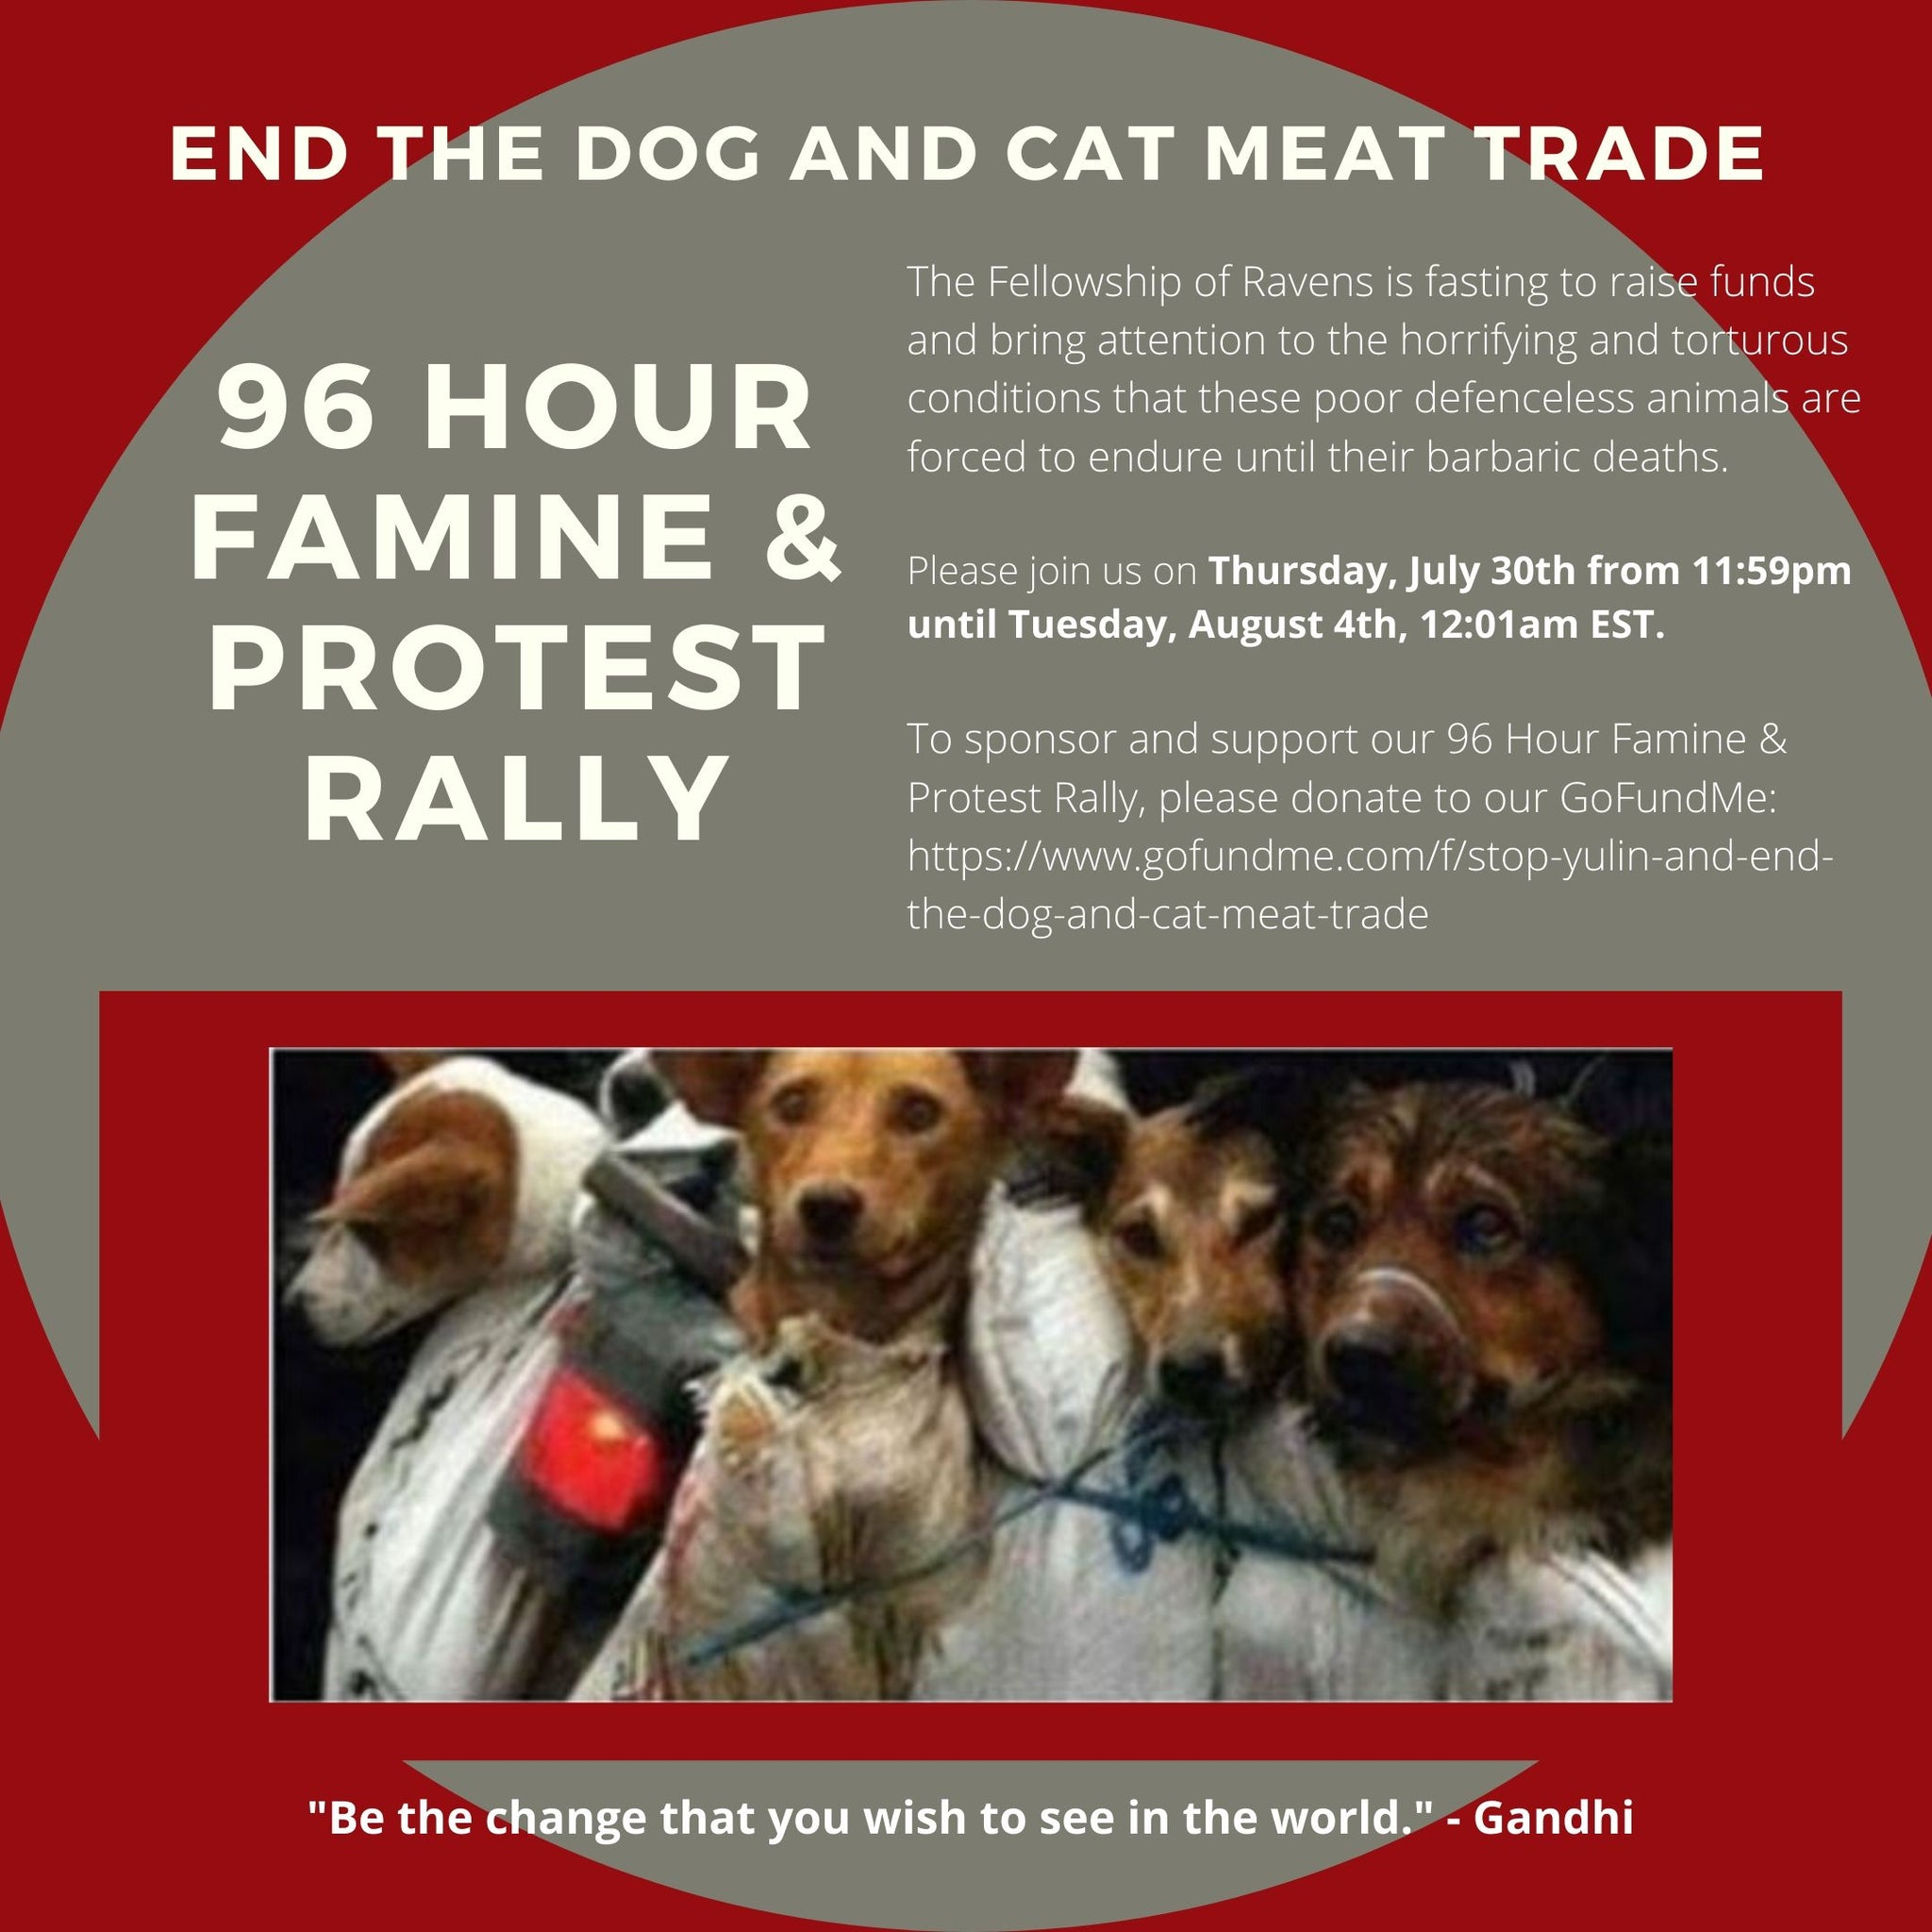 96 Hour Famine & Protest Rally - END The Dog And Cat Meat Trade